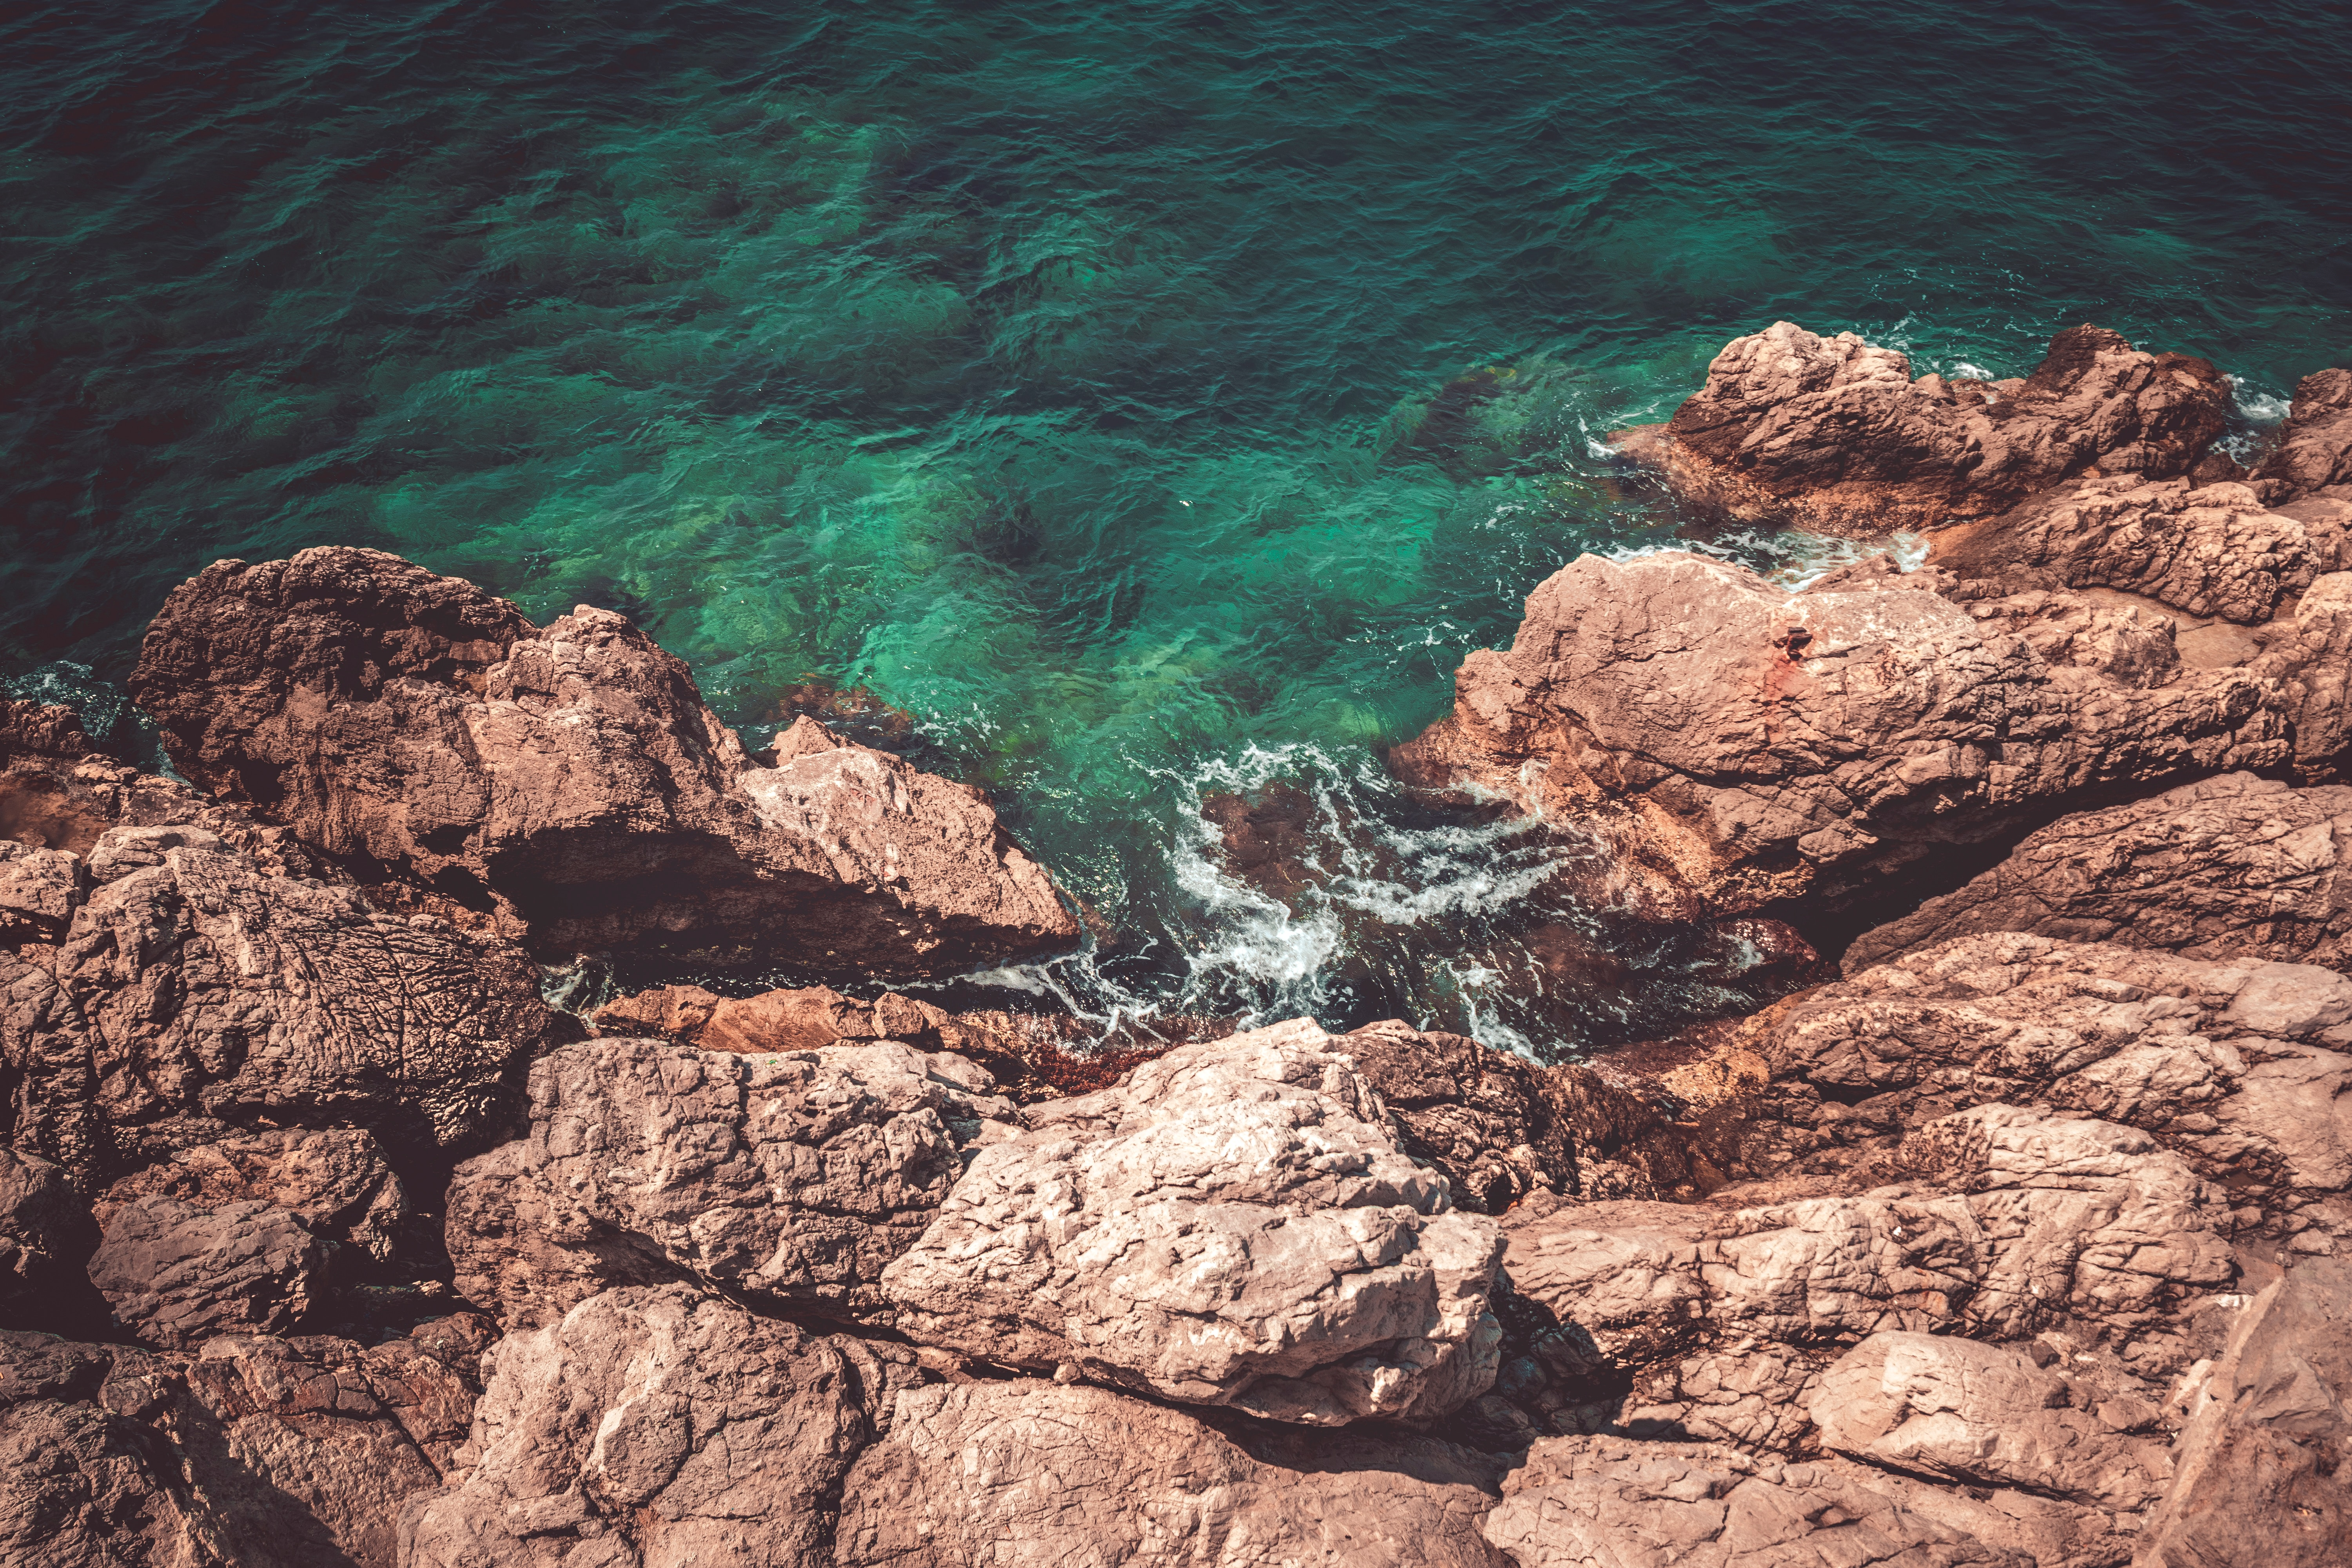 148892 download wallpaper View From Above, Nature, Water, Sea, Rocks, Coast screensavers and pictures for free